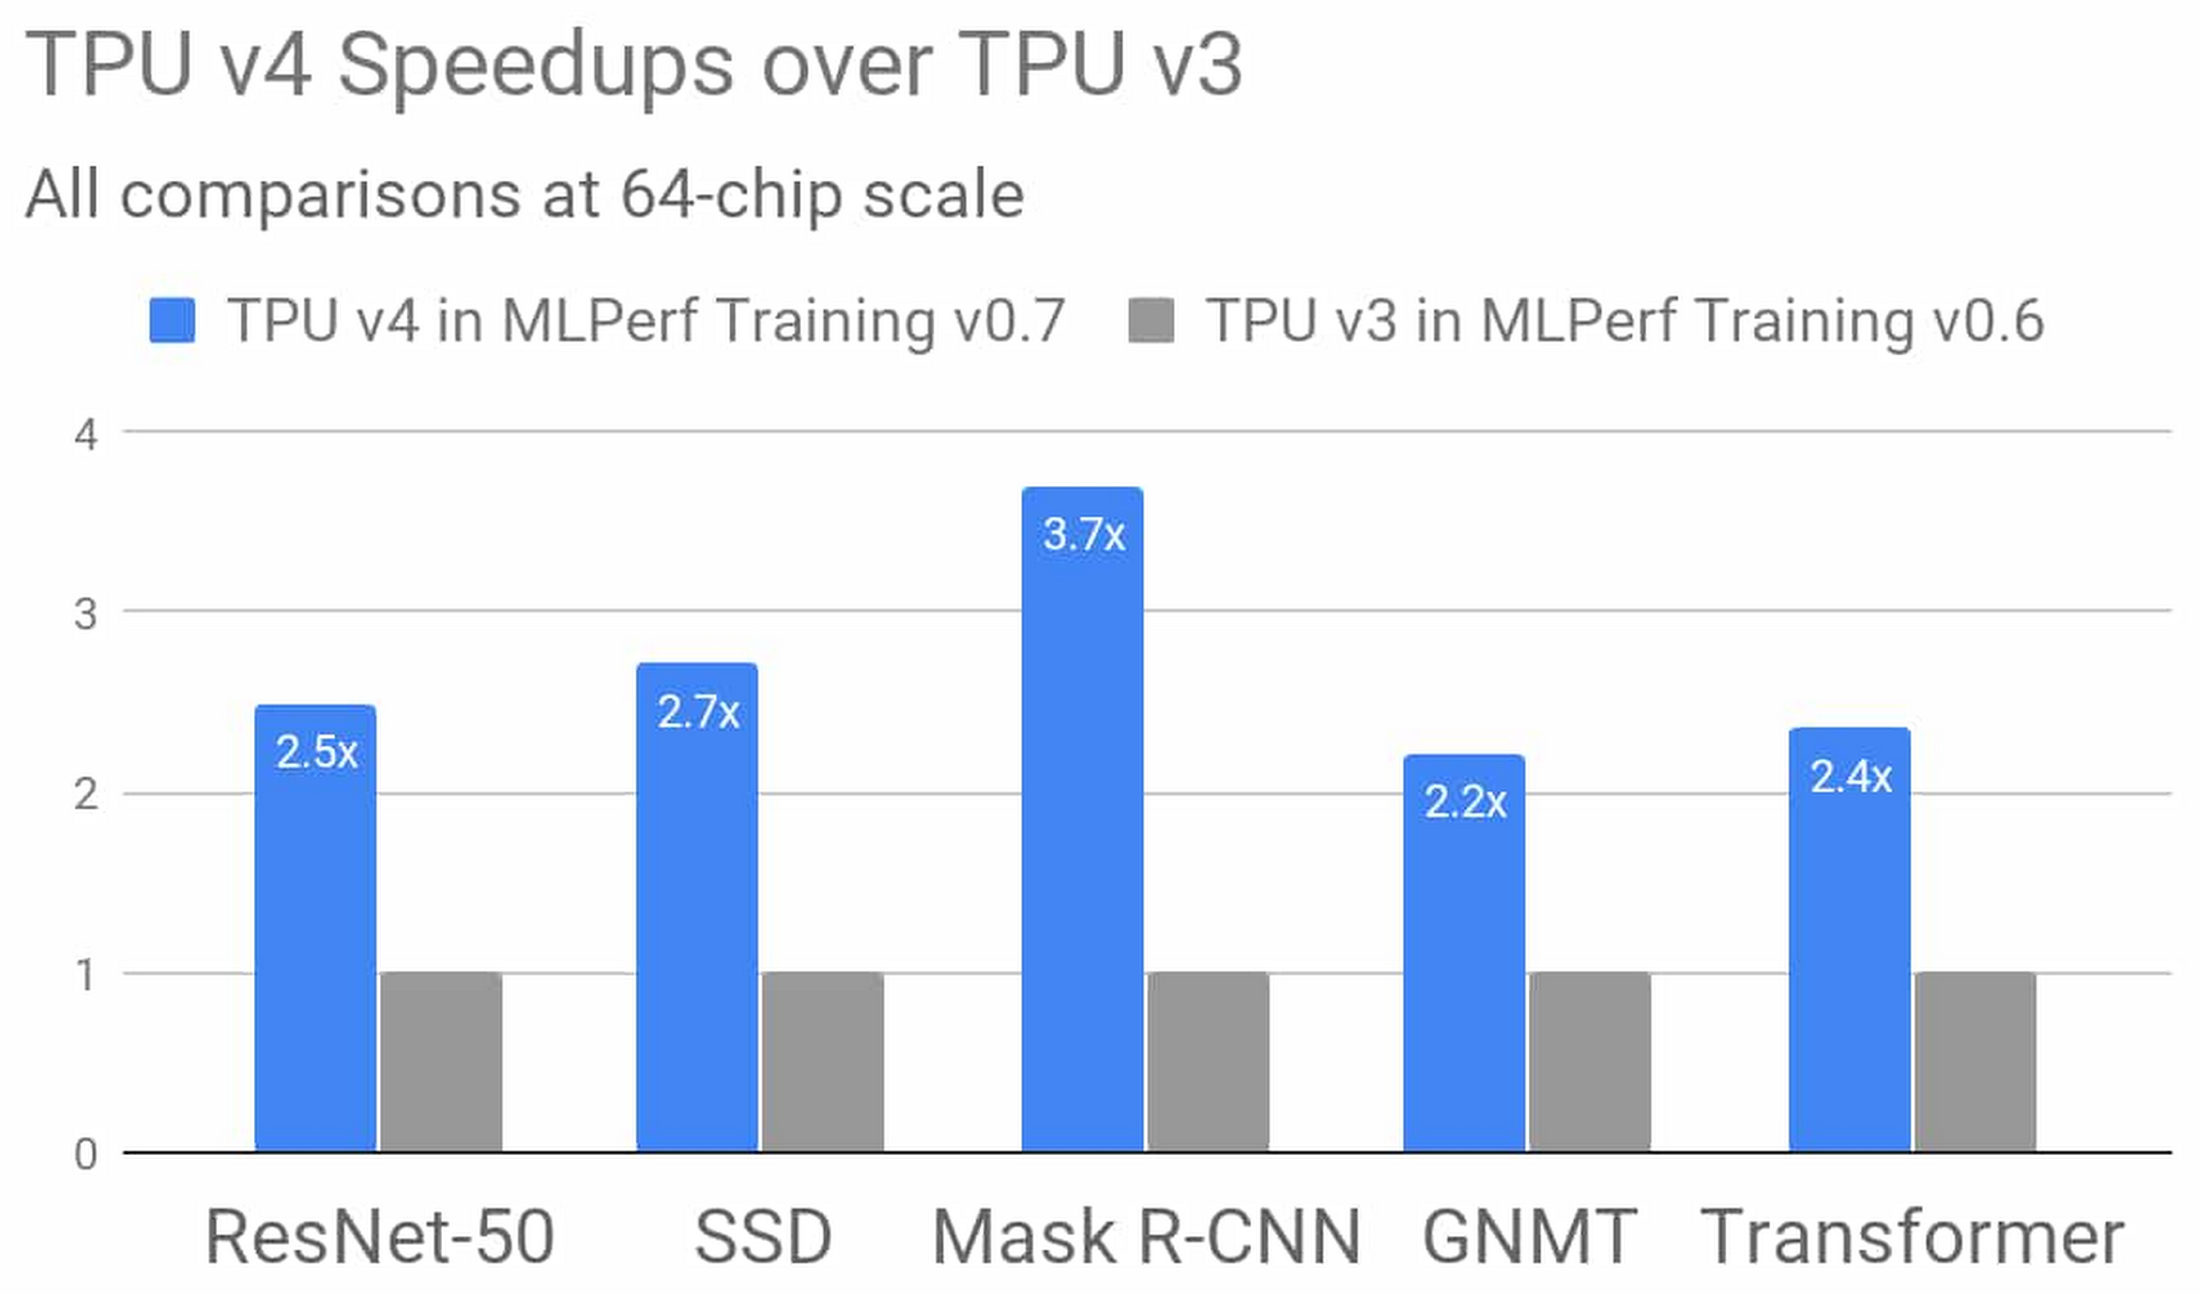 tpu_v4_speedups_over_tpu_v3.png